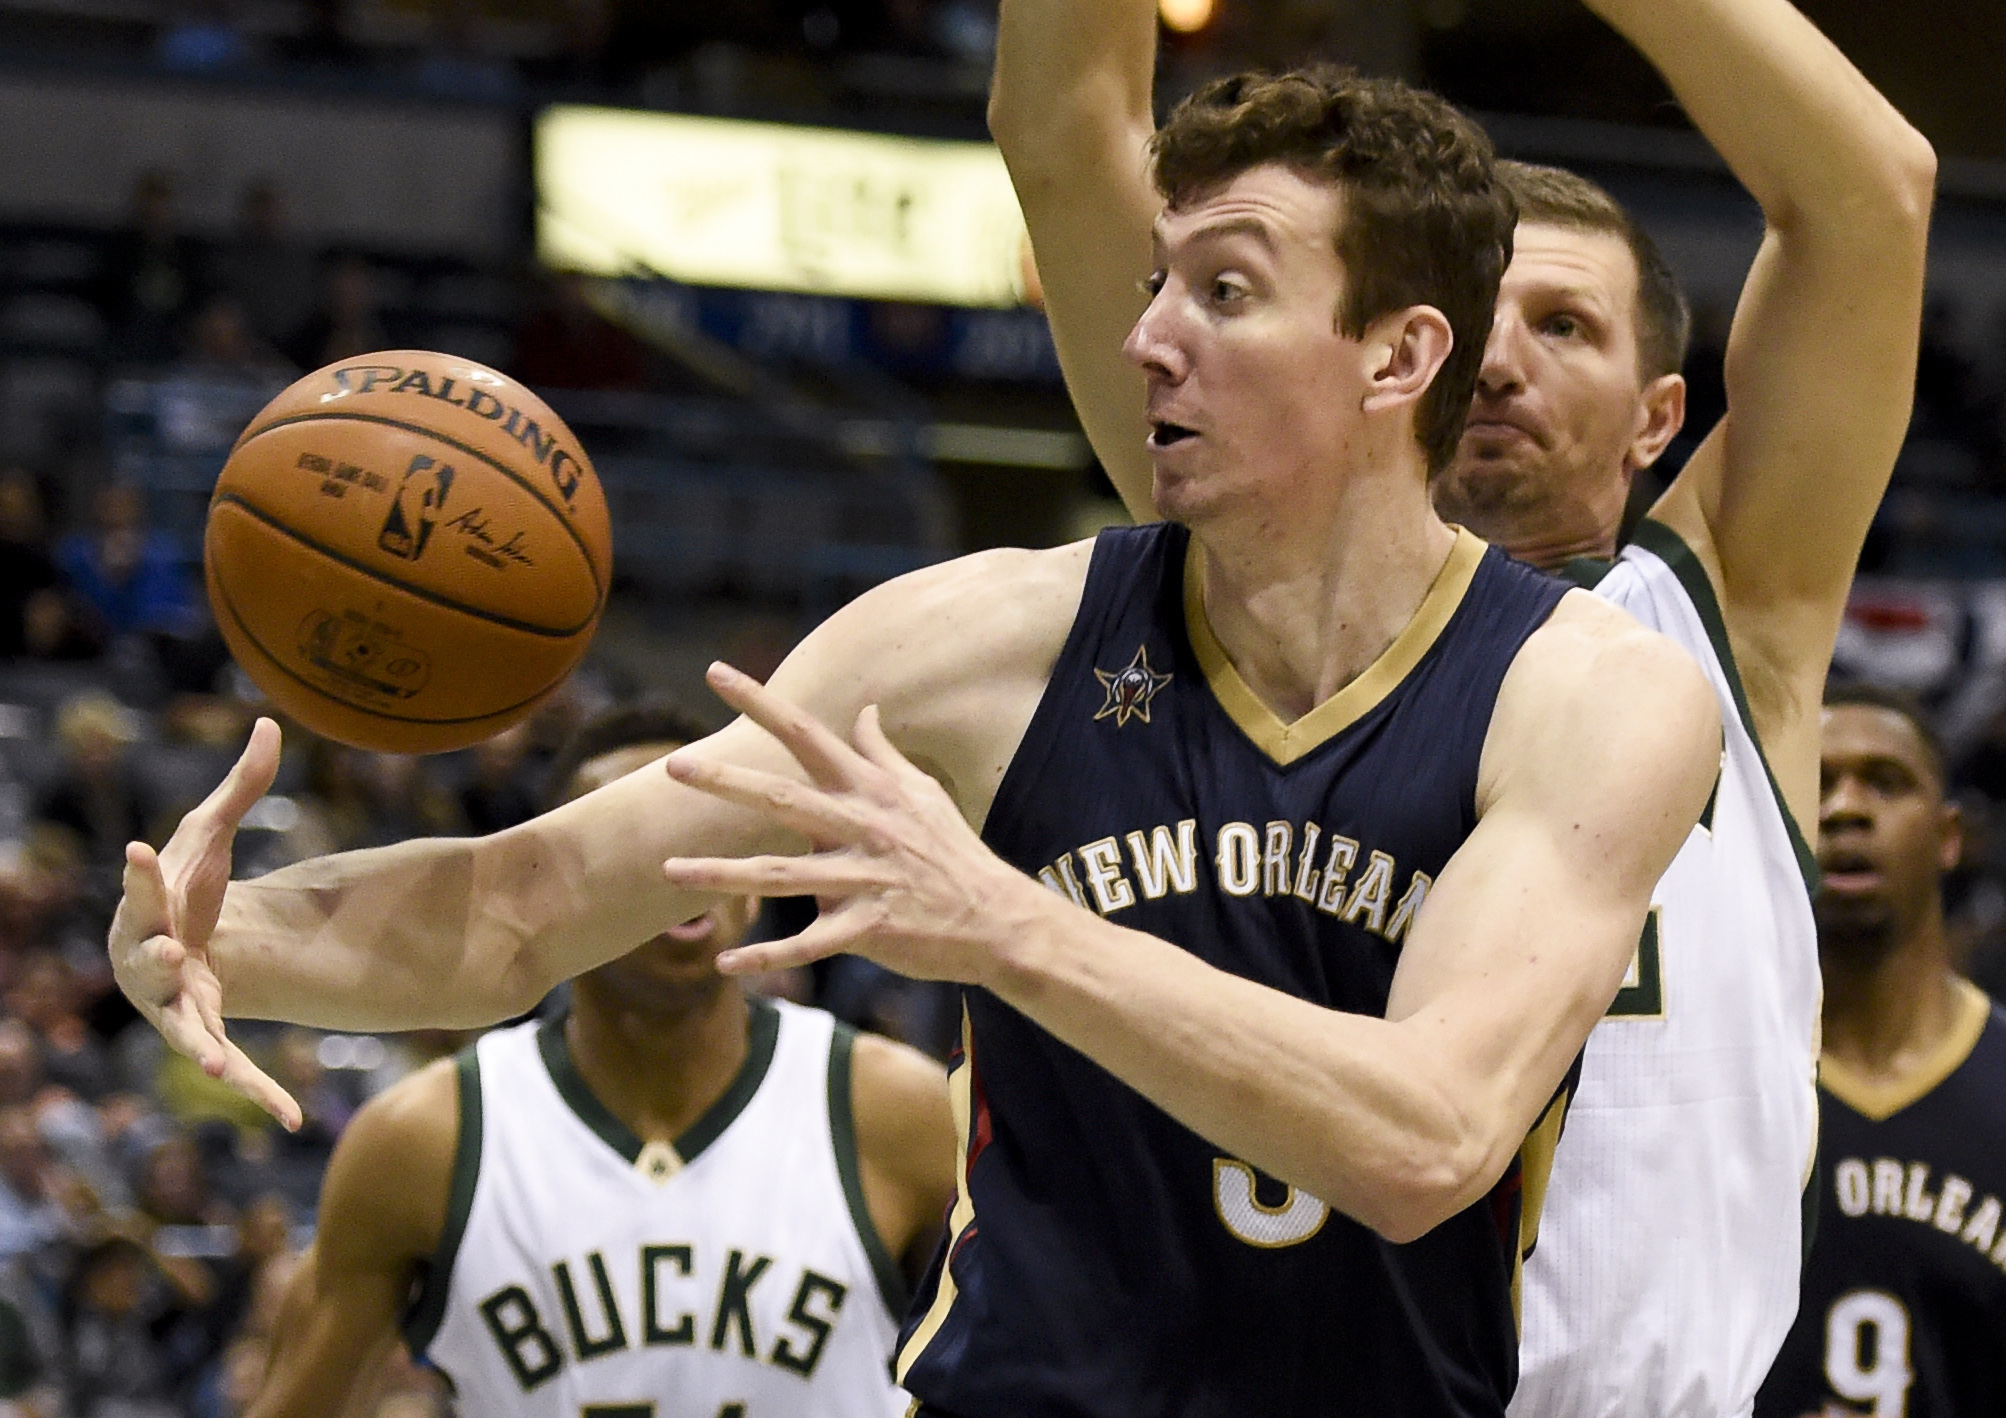 Nov 10, 2016; Milwaukee, WI, USA; New Orleans Pelicans center Omer Asik (3) grabs a loose ball in front of Milwaukee Bucks forward Mirza Teletovic (35) in the second quarter at BMO Harris Bradley Center. Mandatory Credit: Benny Sieu-USA TODAY Sports